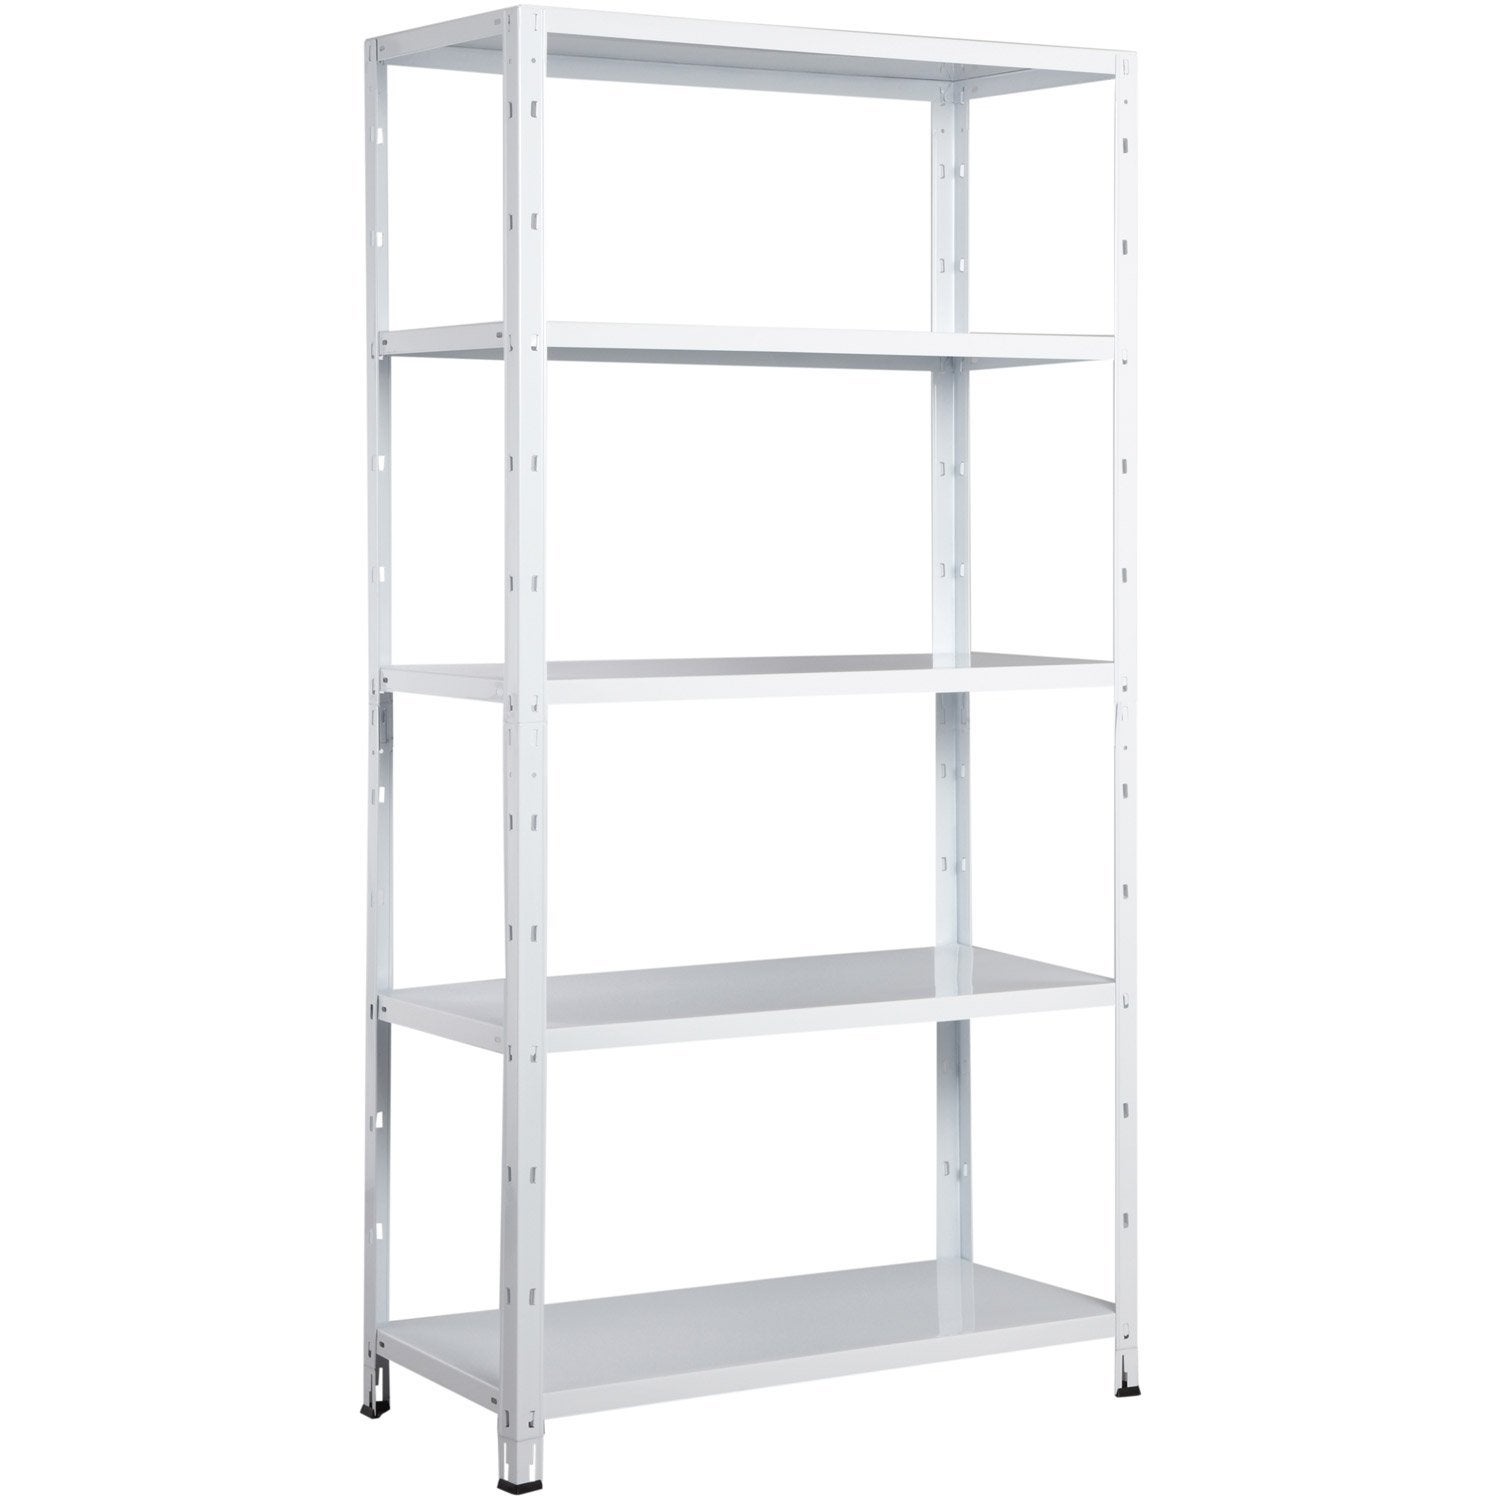 Etag re en acier epoxy blanc 5 tablettes avasco clicker l90xh180xp40cm le - Leroy merlin etagere metal ...